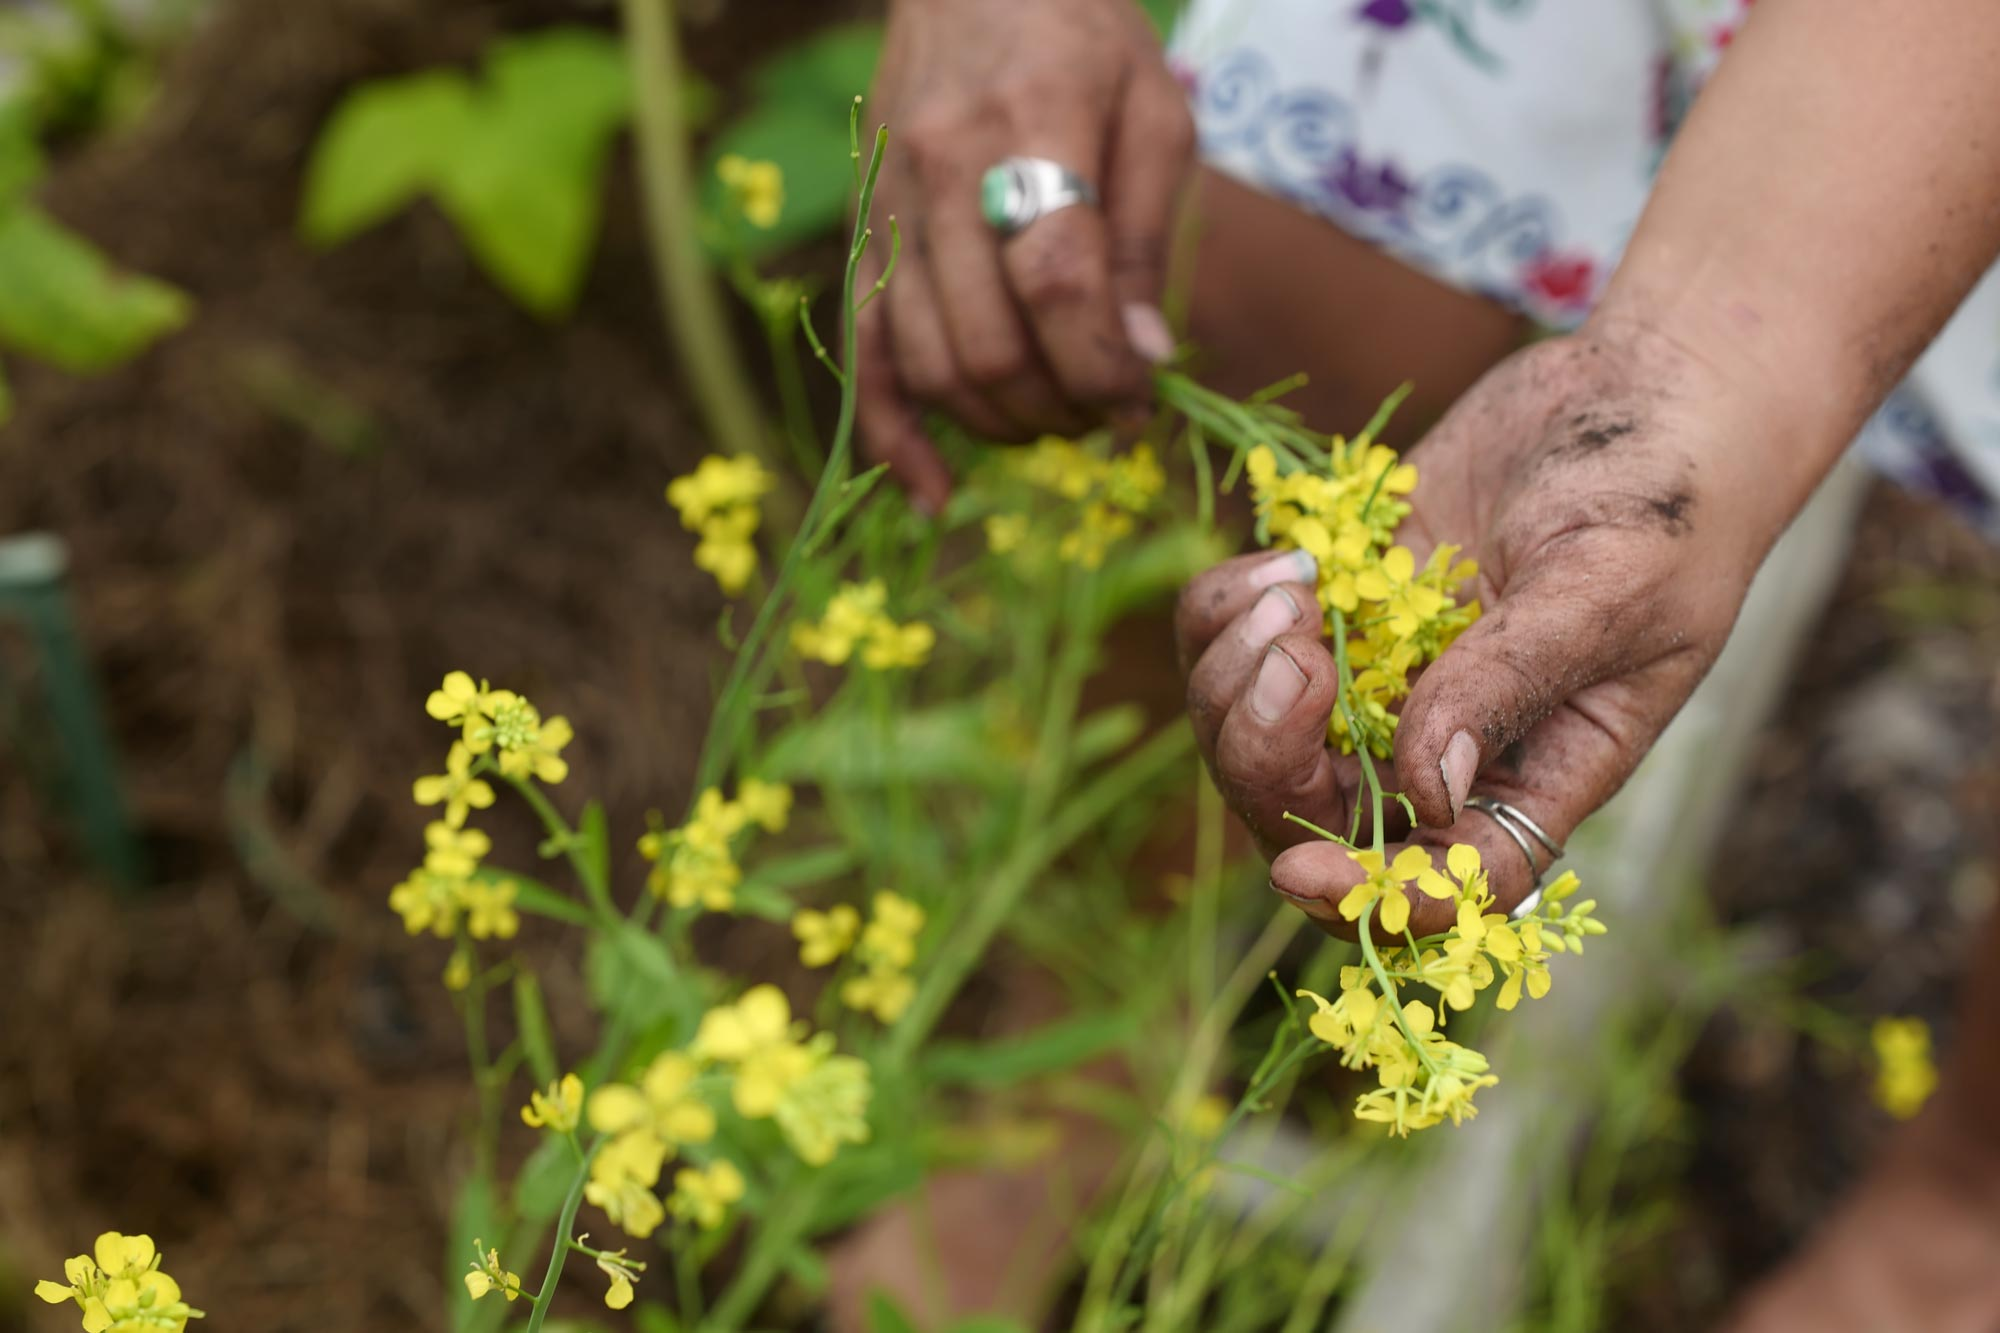 Photo of a gardener's hands holding the stems of a yellow flowering plant